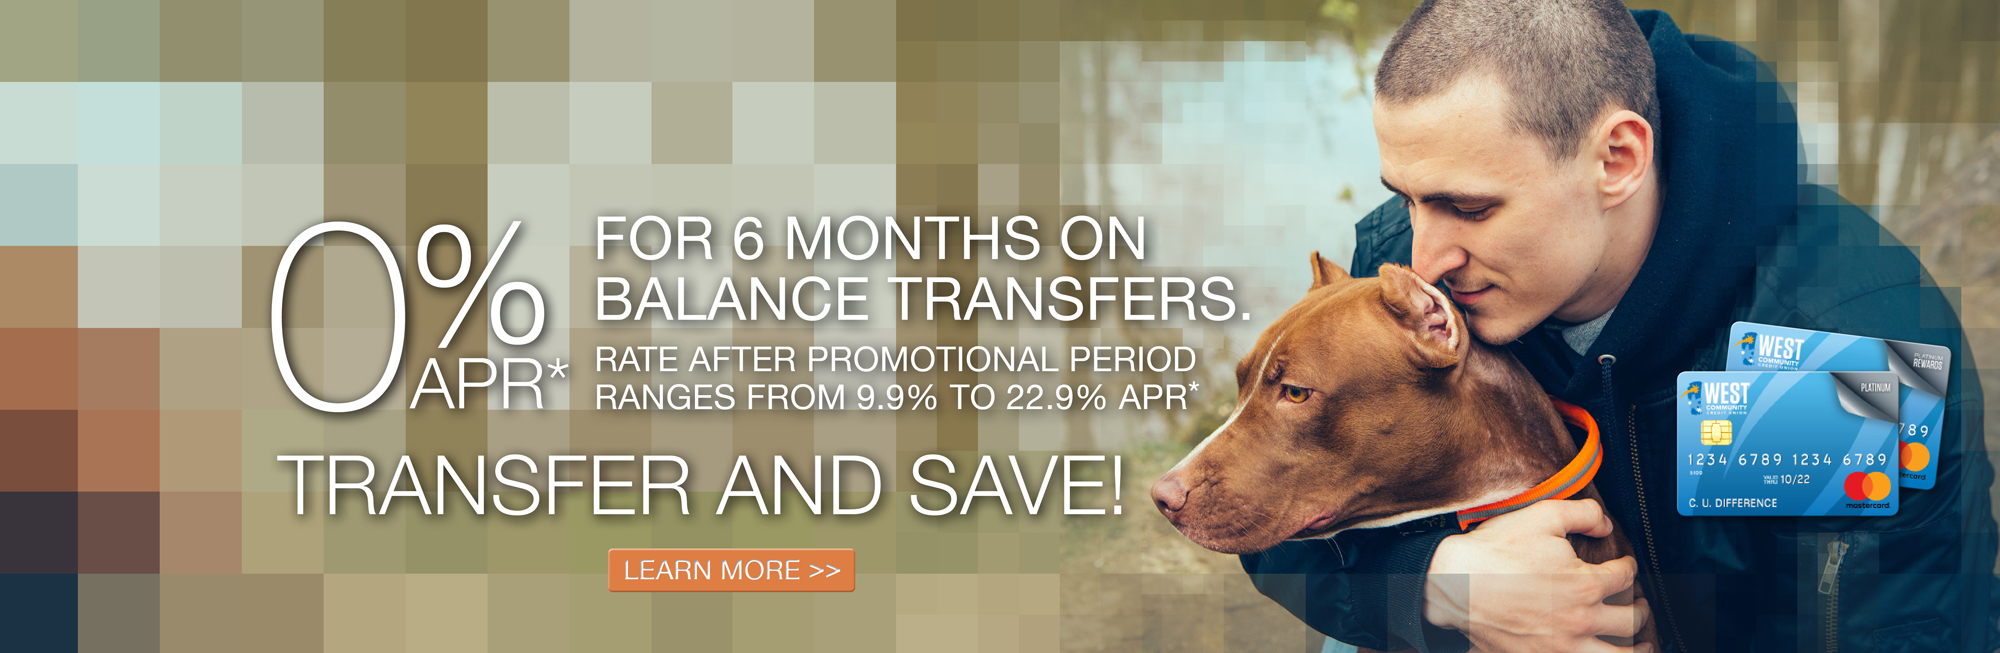 Credit Card Balance Transfer. Get 0% APR on Balance Transfers. Rate after promotional period ranges from 9.9% to 22.9% APR.